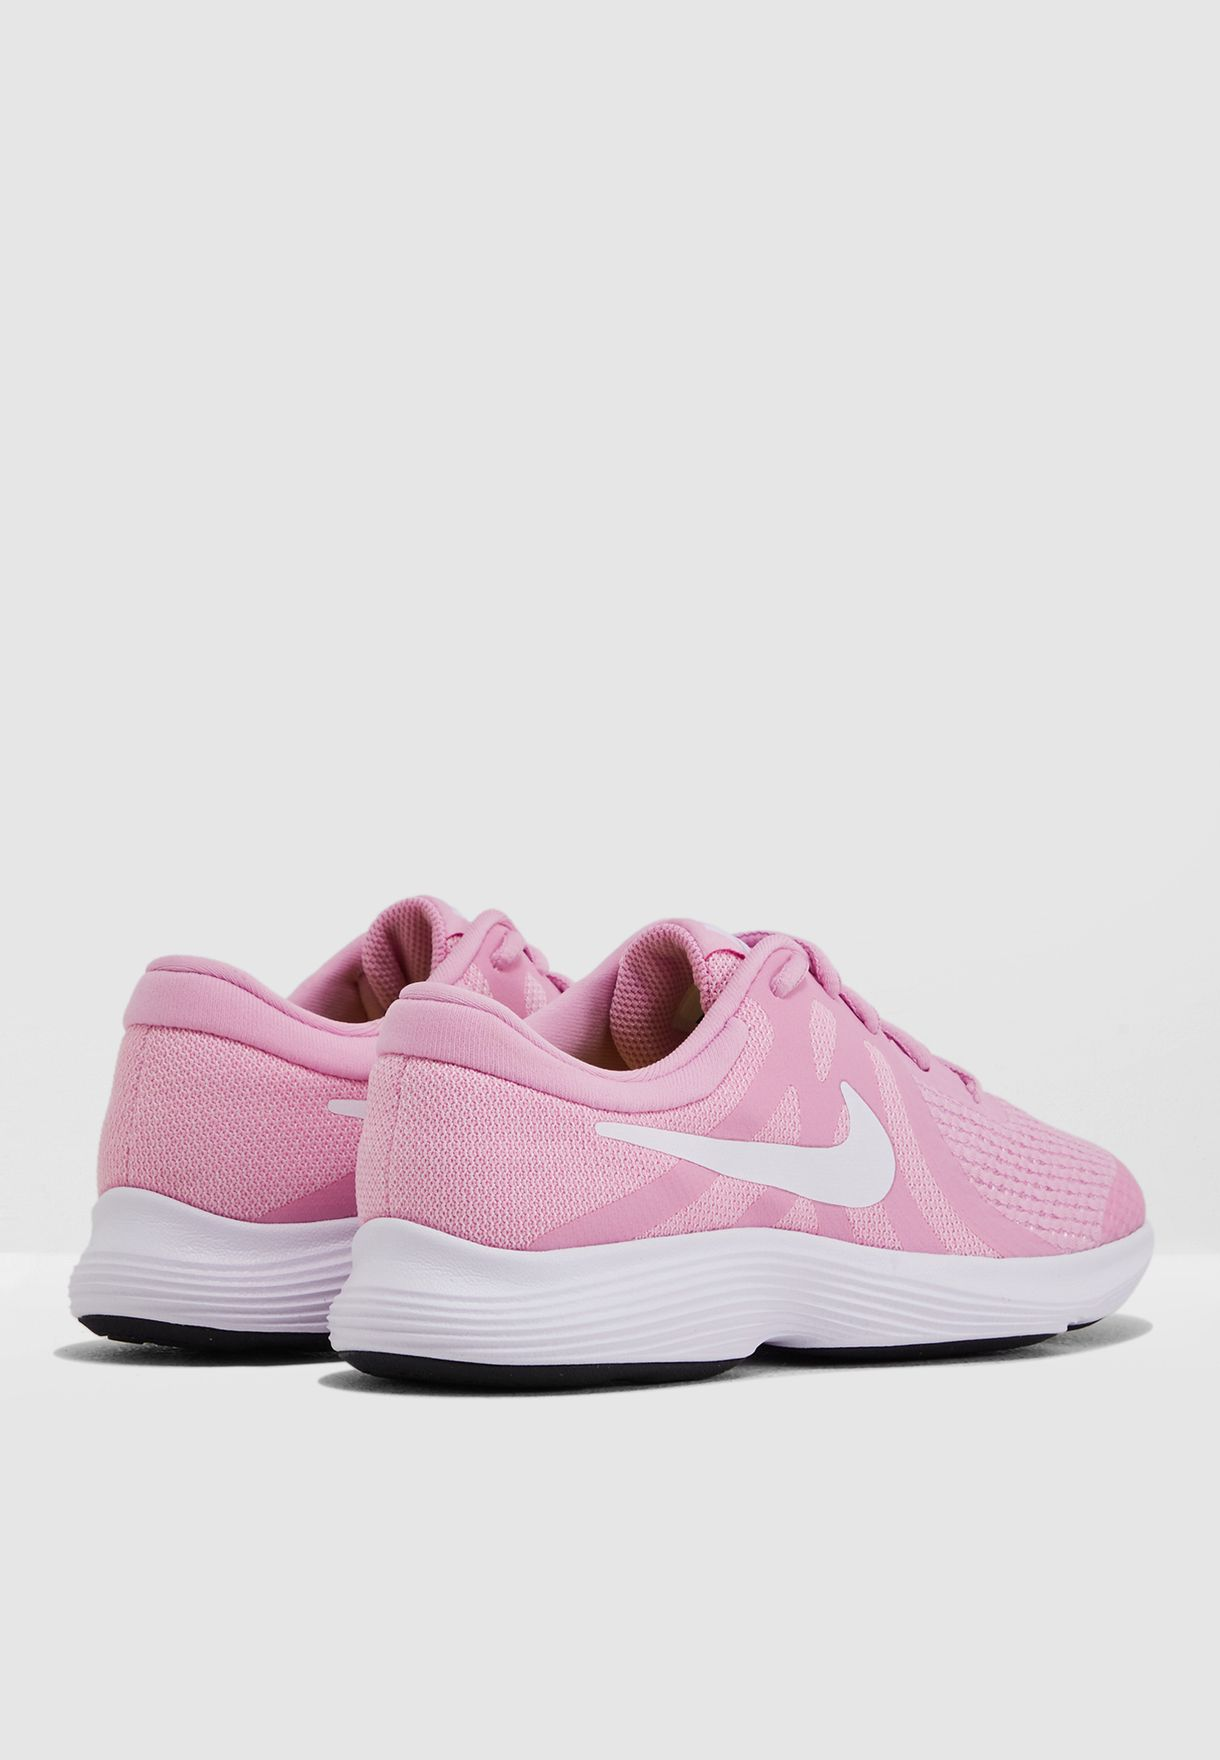 4d1c3f85557 Shop Nike pink Youth Revolution 4 943306-603 for Kids in Qatar ...